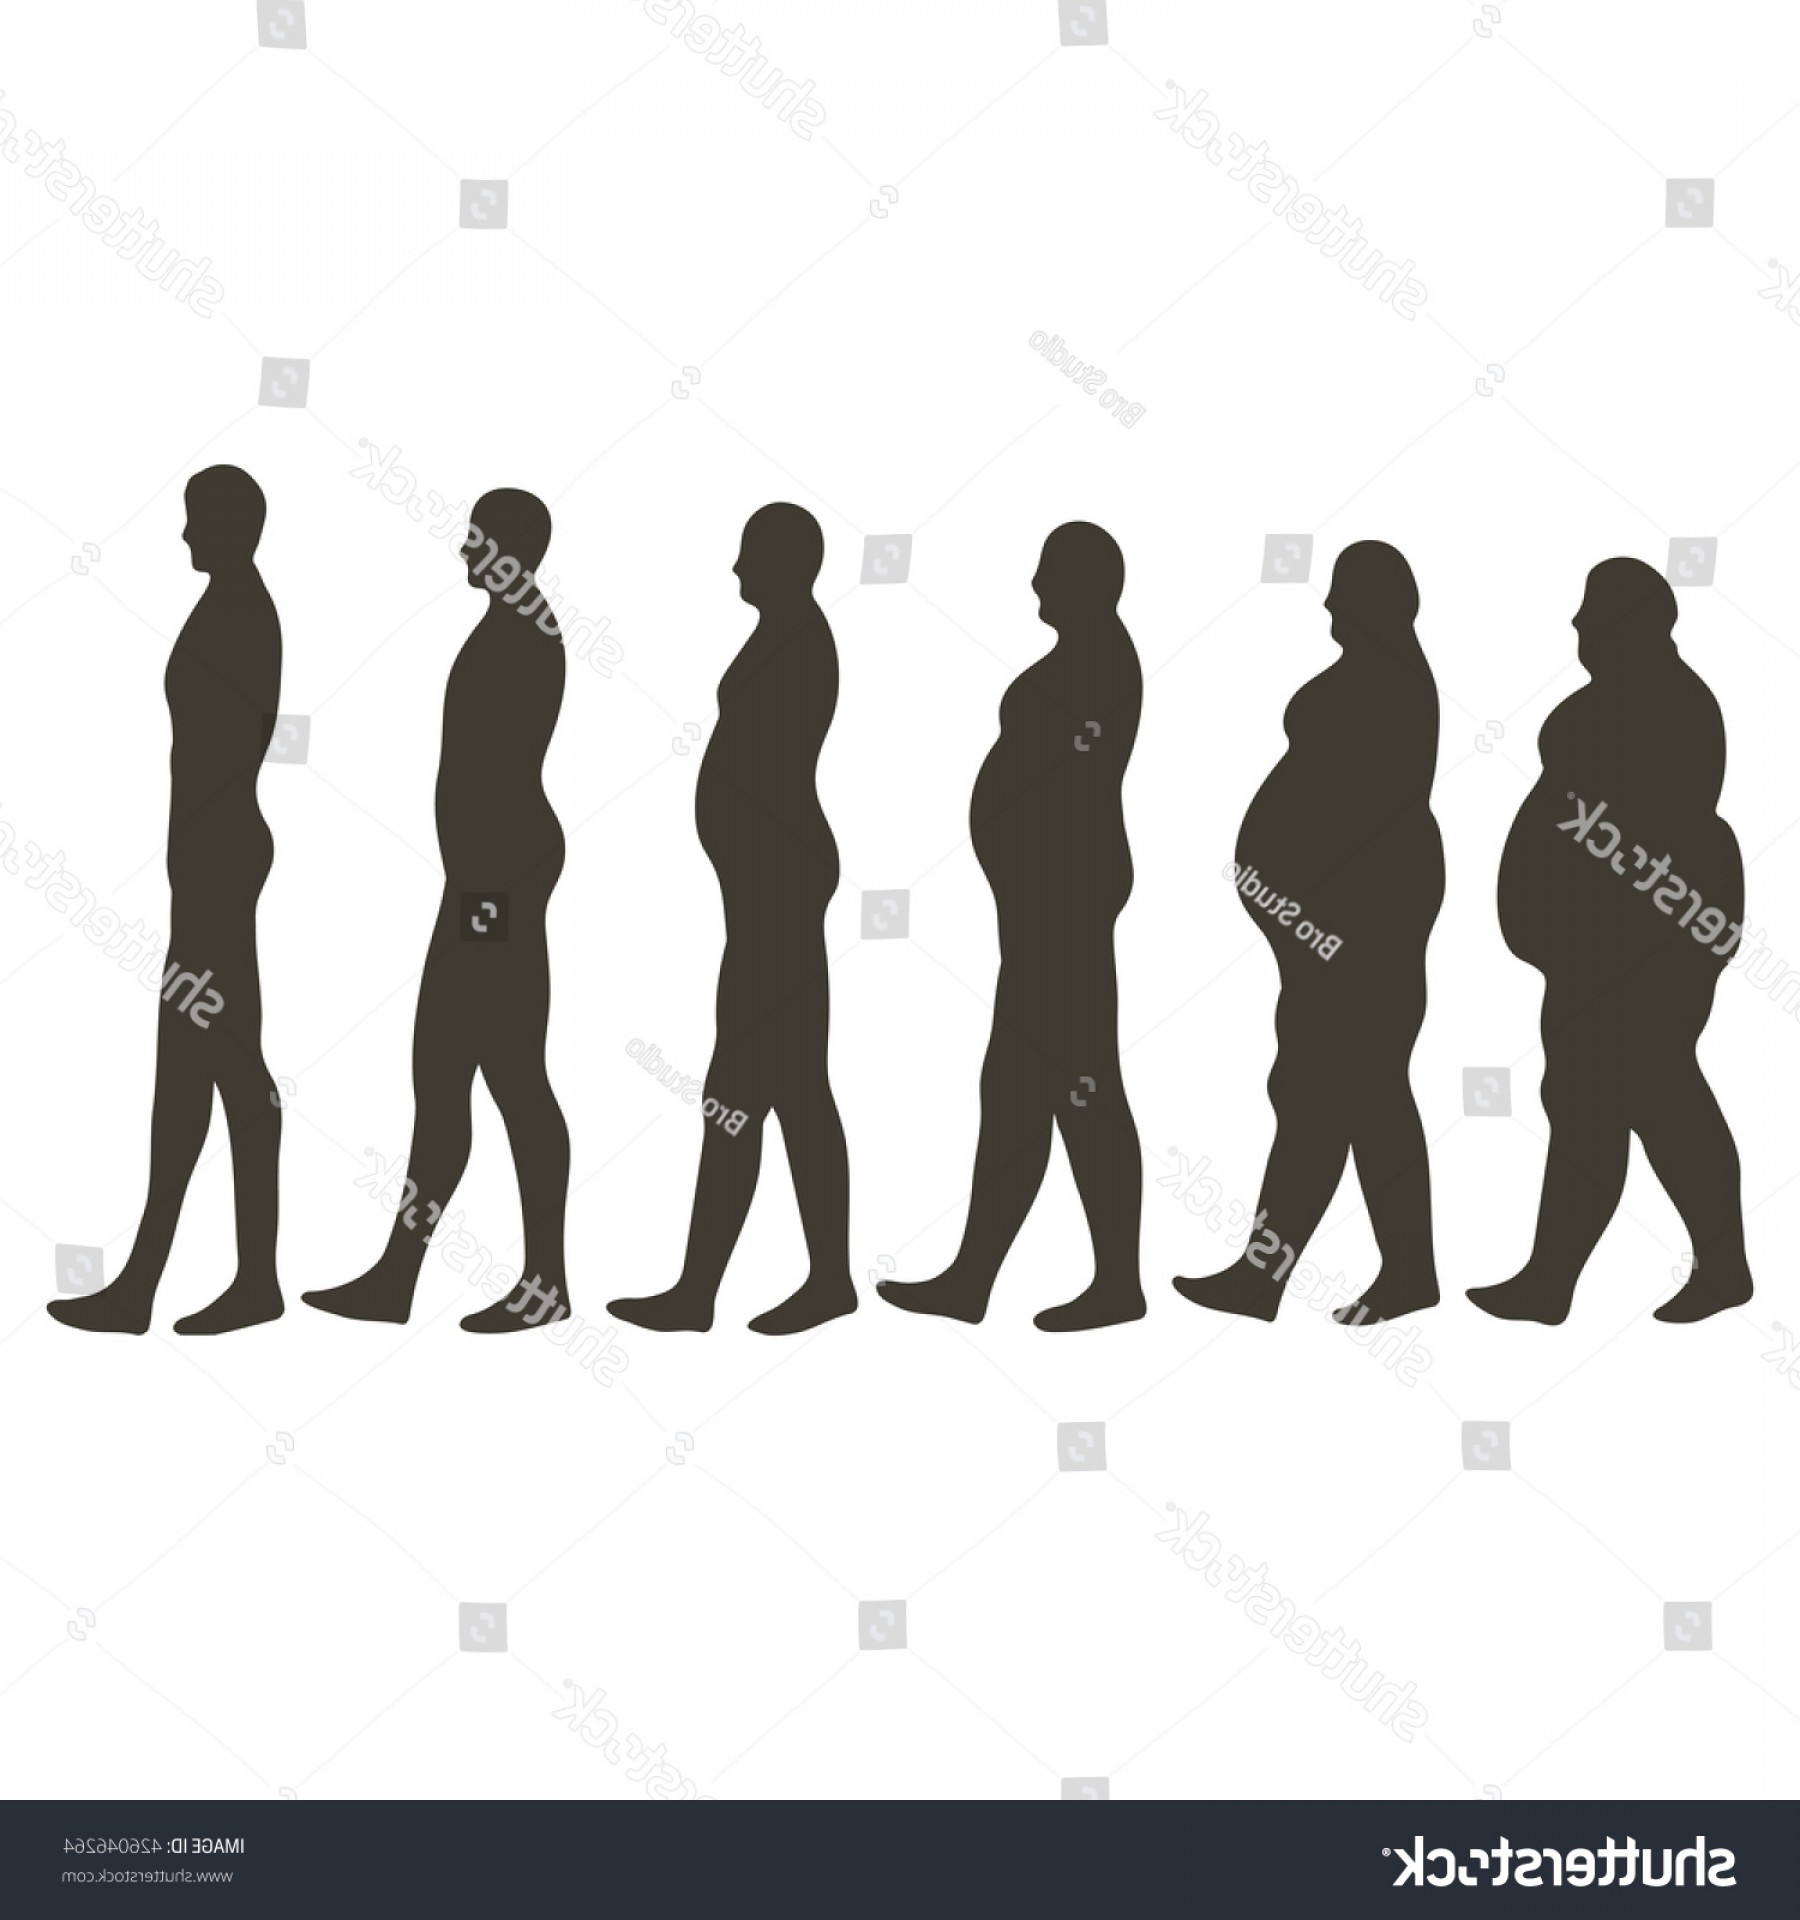 Growth Vector People: Reducing Persons Weight Height Silhouettes Human